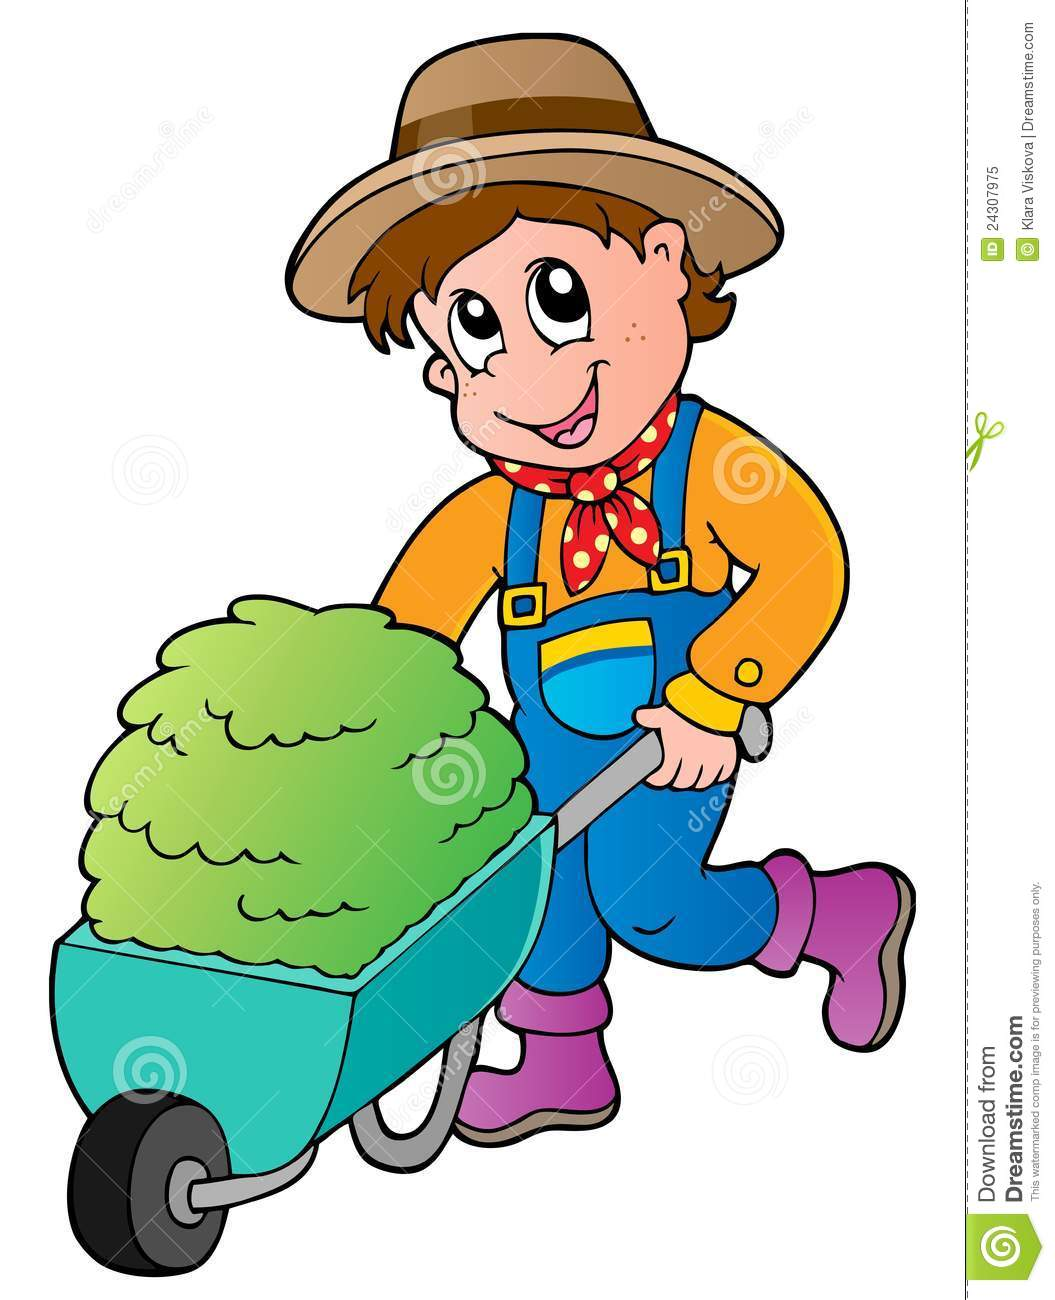 Hay Farmer Tractor Cartoon : Cartoon farmer with small hay cart stock vector